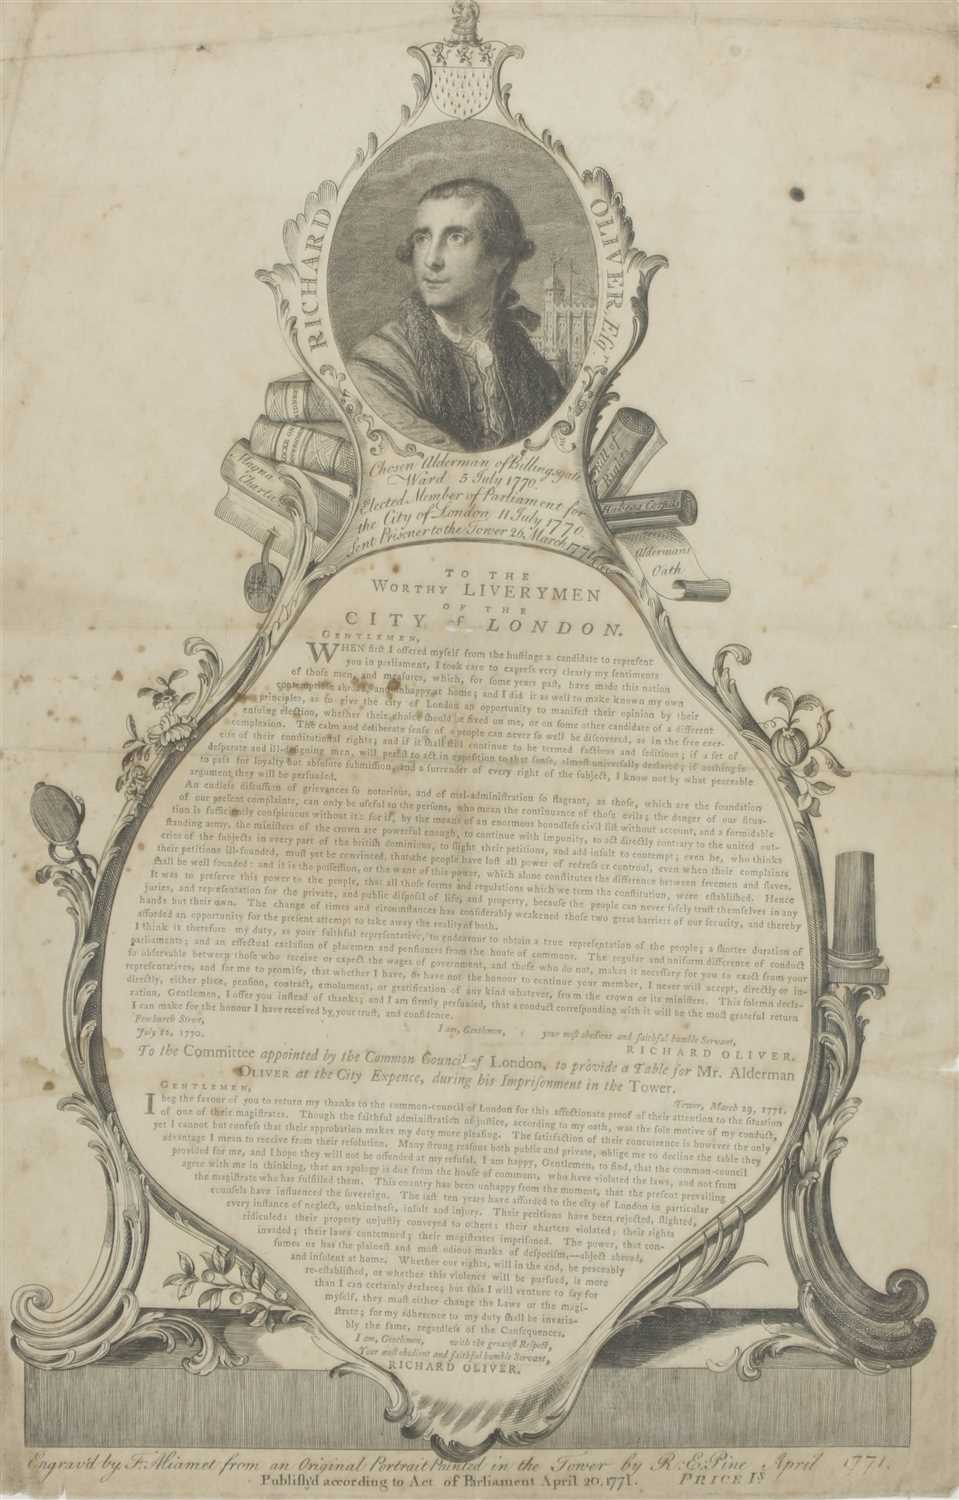 Lot 21 - FROM RICHARD OLIVER ESQ. TO THE WORTHY LIVERYMEN OF THE CITY OF LONDON